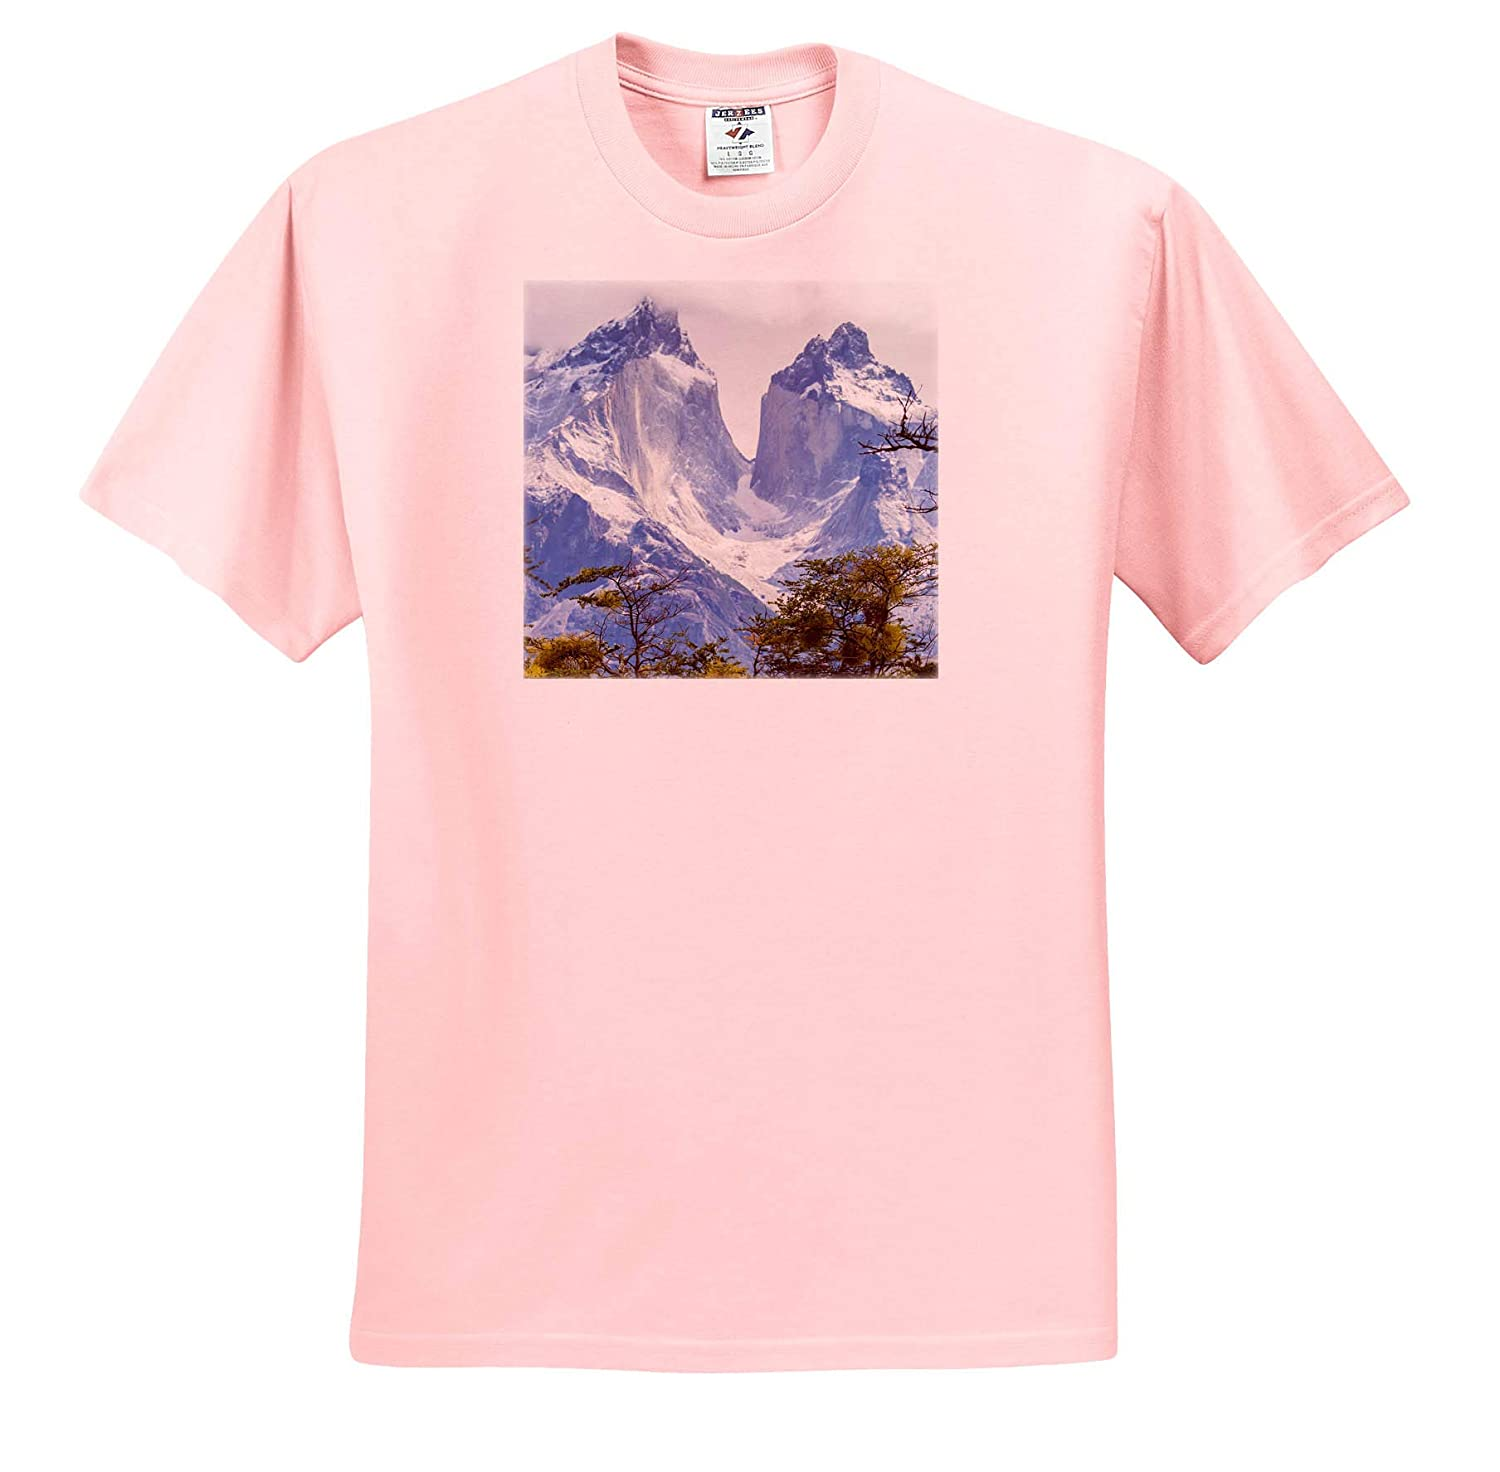 - Adult T-Shirt XL Chile Mountains ts/_314352 Patagonia 3dRose Danita Delimont The Horns Mountains